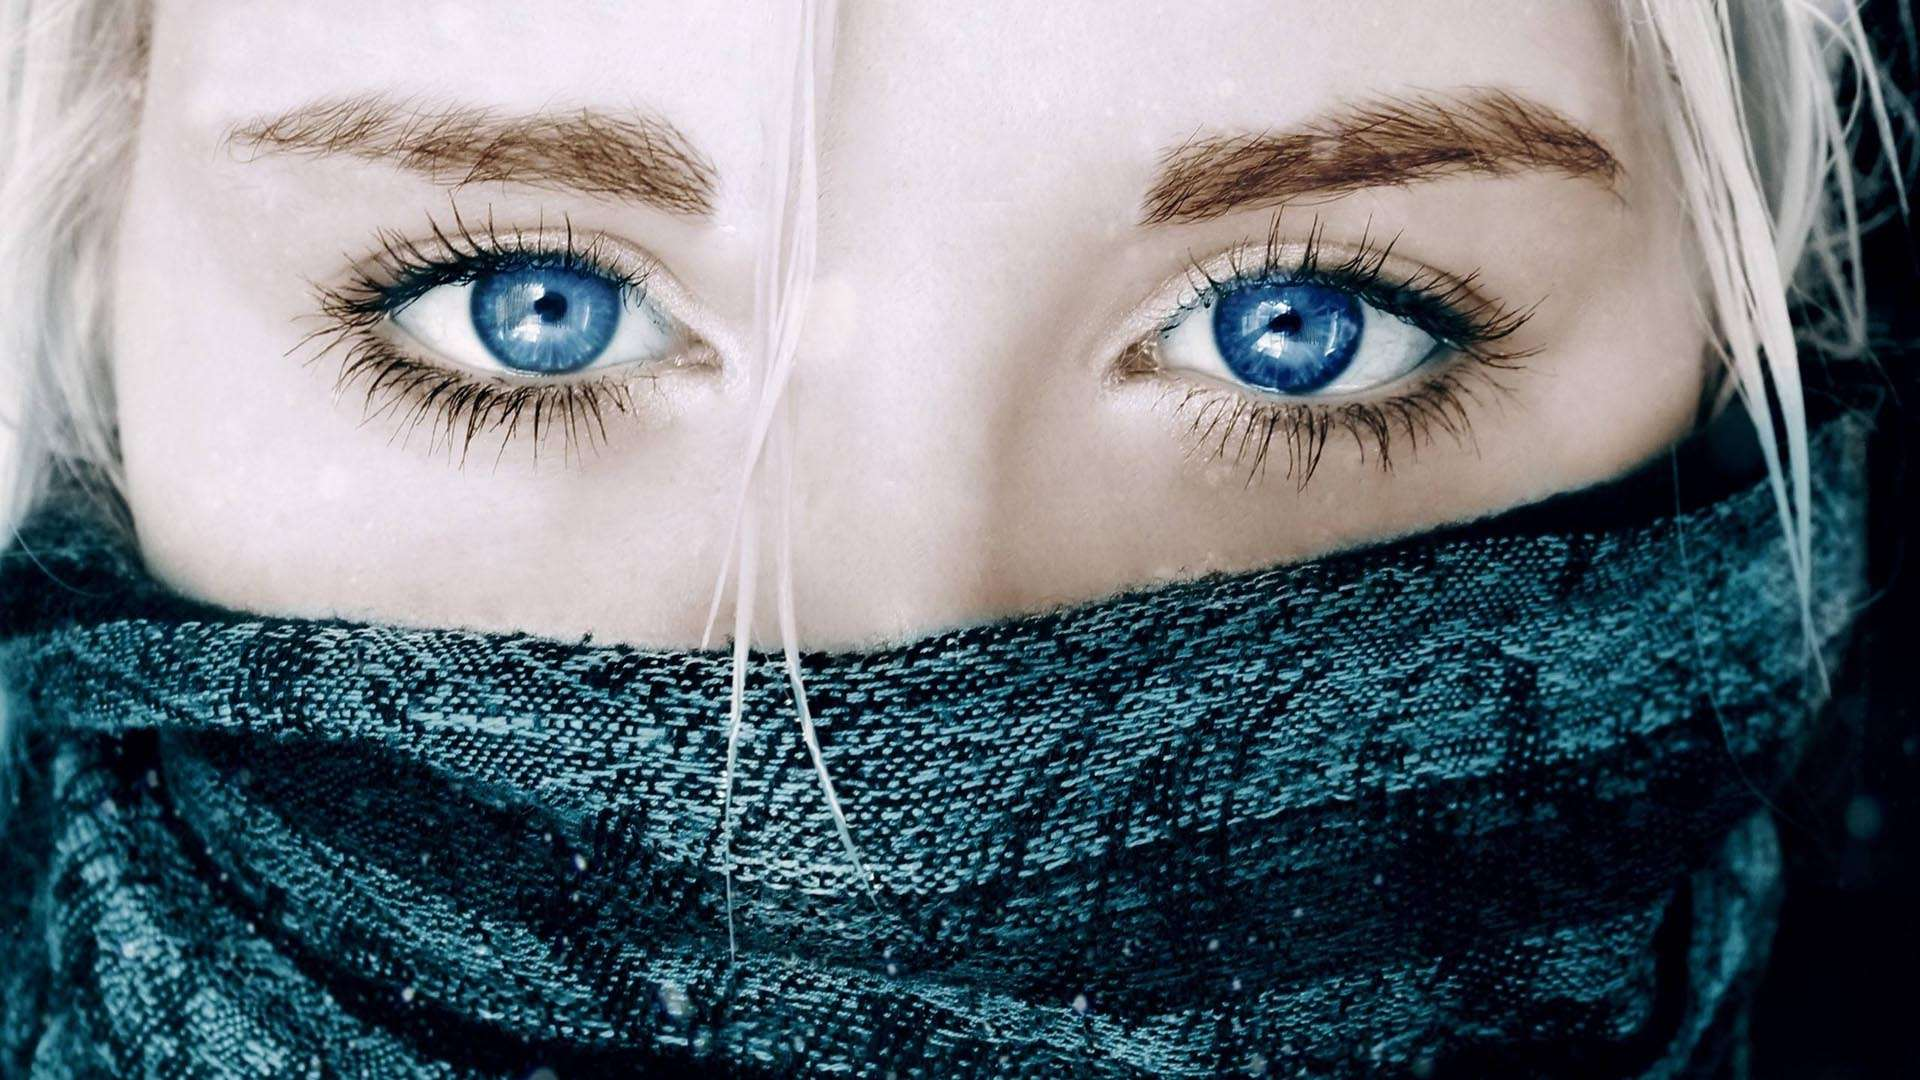 and blue eyes HD Wallpaper FullHDWpp   Full HD Wallpapers 1920x1080 1920x1080